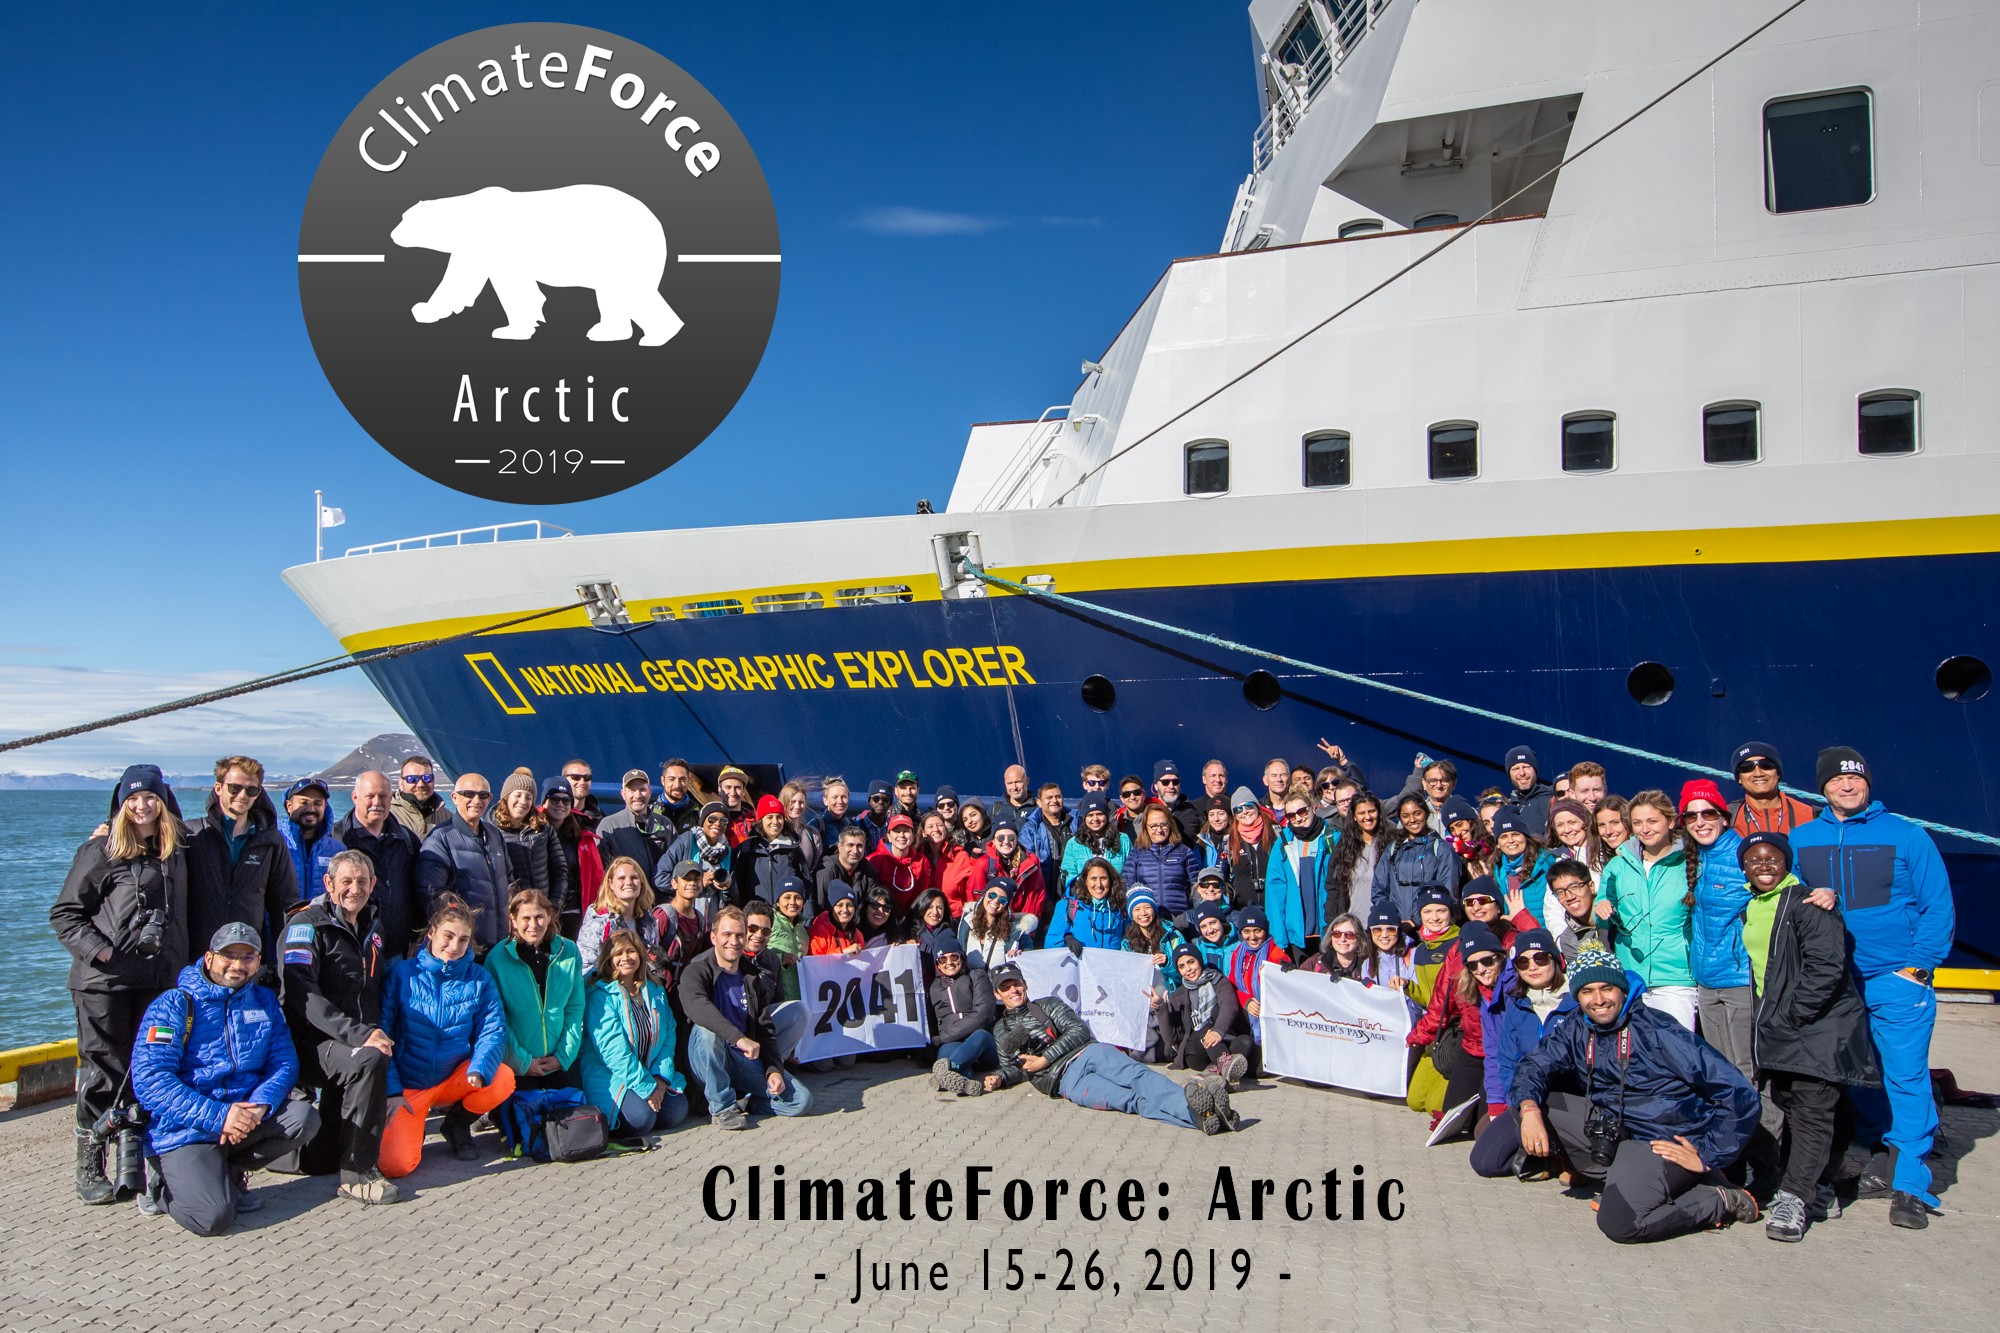 UT student Seyi Odufuye with ClimateForce students and explorer Robert Swan in front of their ship.